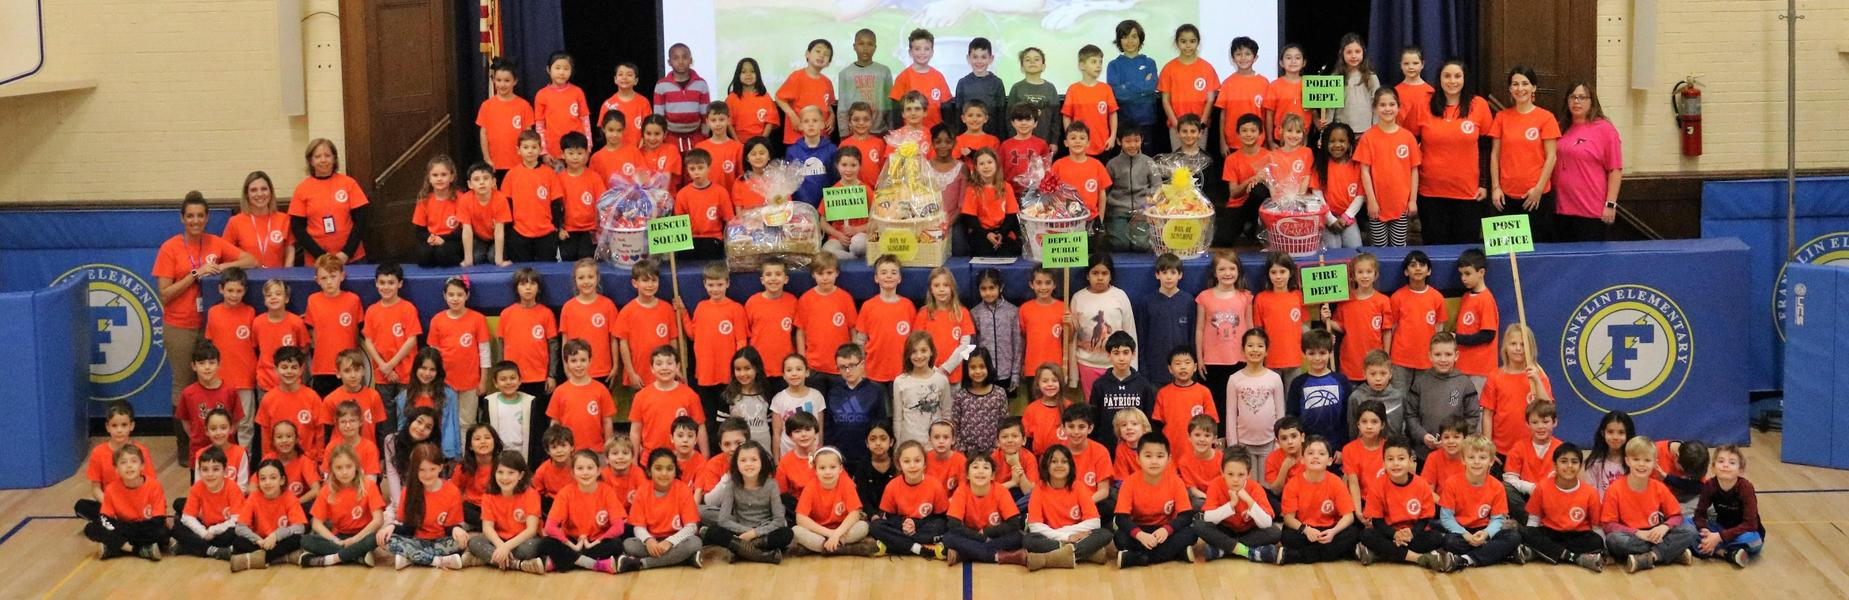 Franklin School 2nd graders participate in Kindness Month by creating baskets filled with necessary items for local emergency responders.  Pictured here is the entire 2nd grade class and their teachers.